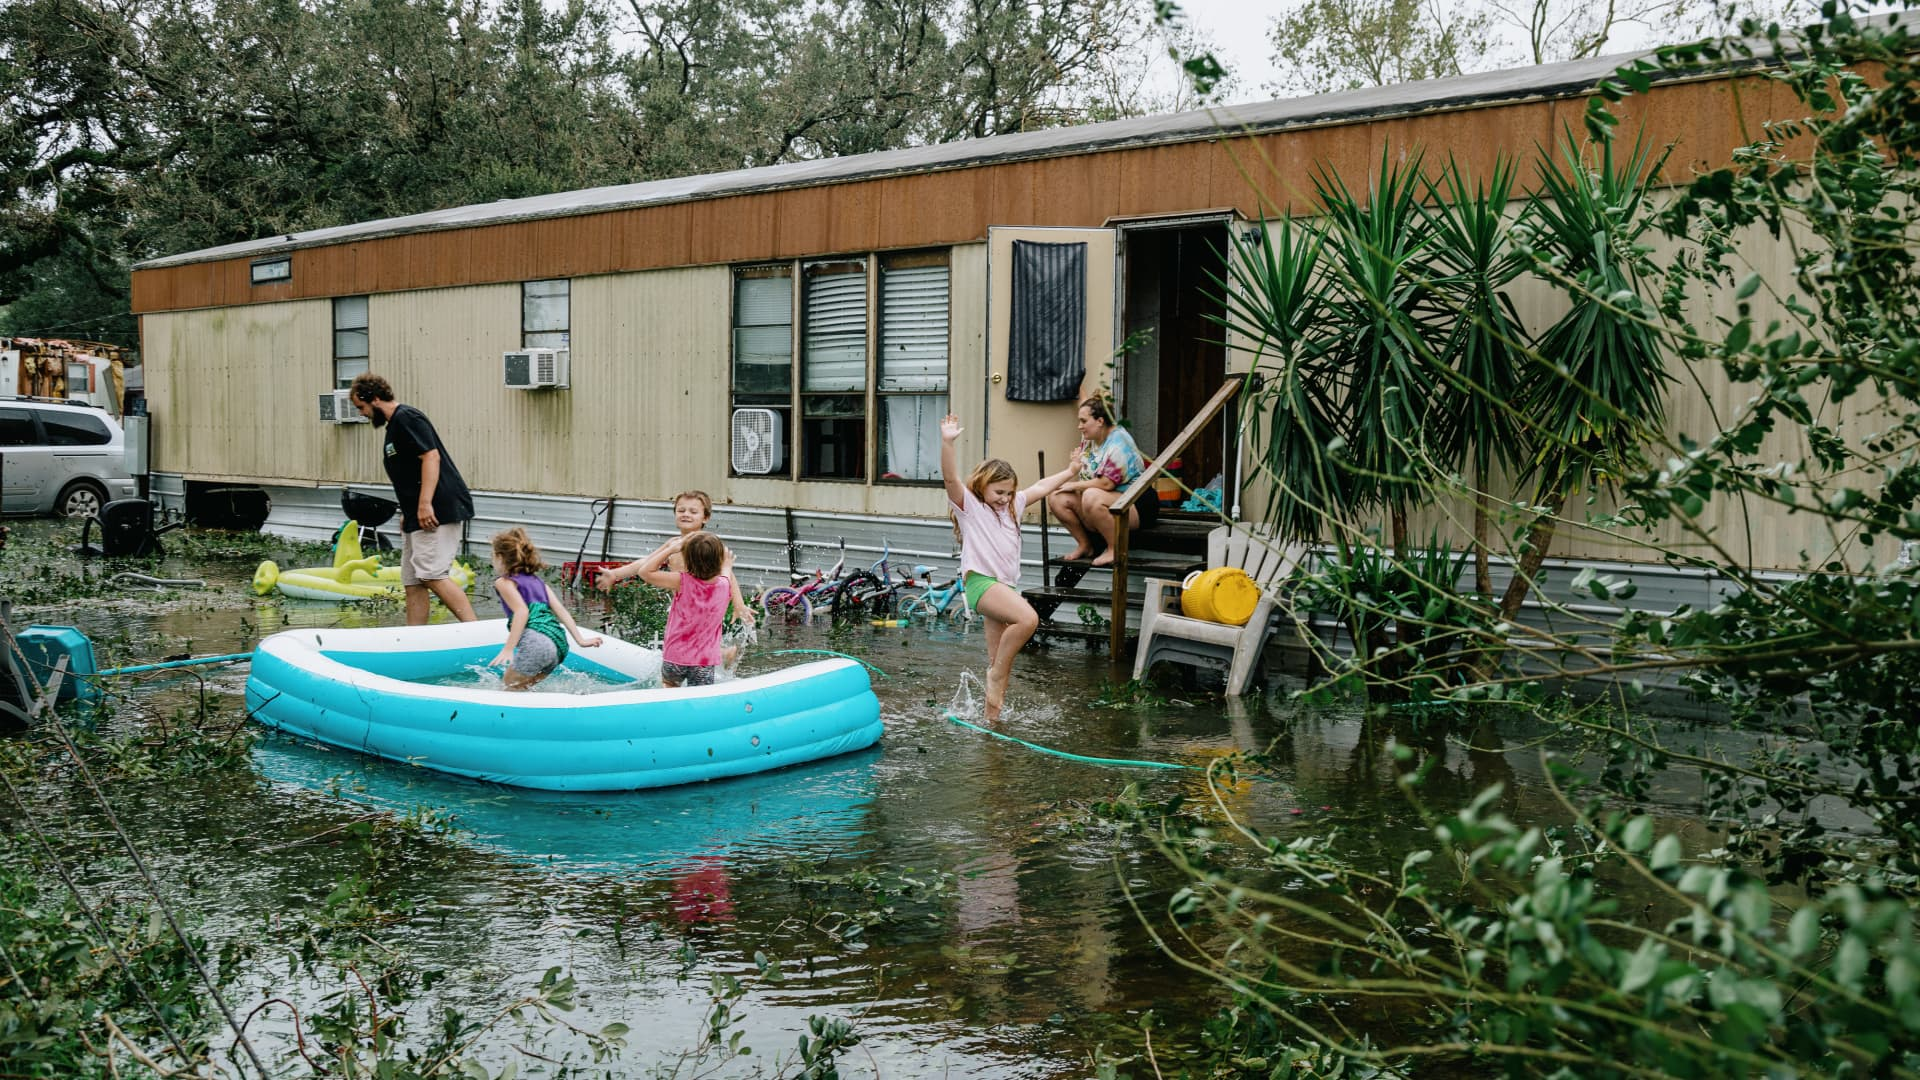 Clinton and Randal Ream with their son Saylor and daughter Nayvie and two neighbors Aubrey Miller and Harmony Morgan at their home in a small trailer park in West Pensacola. The area received a lot of damage after Hurricane Sally came through as a category 2 hurricane in Pensacola, La. on September 16th, 2020.